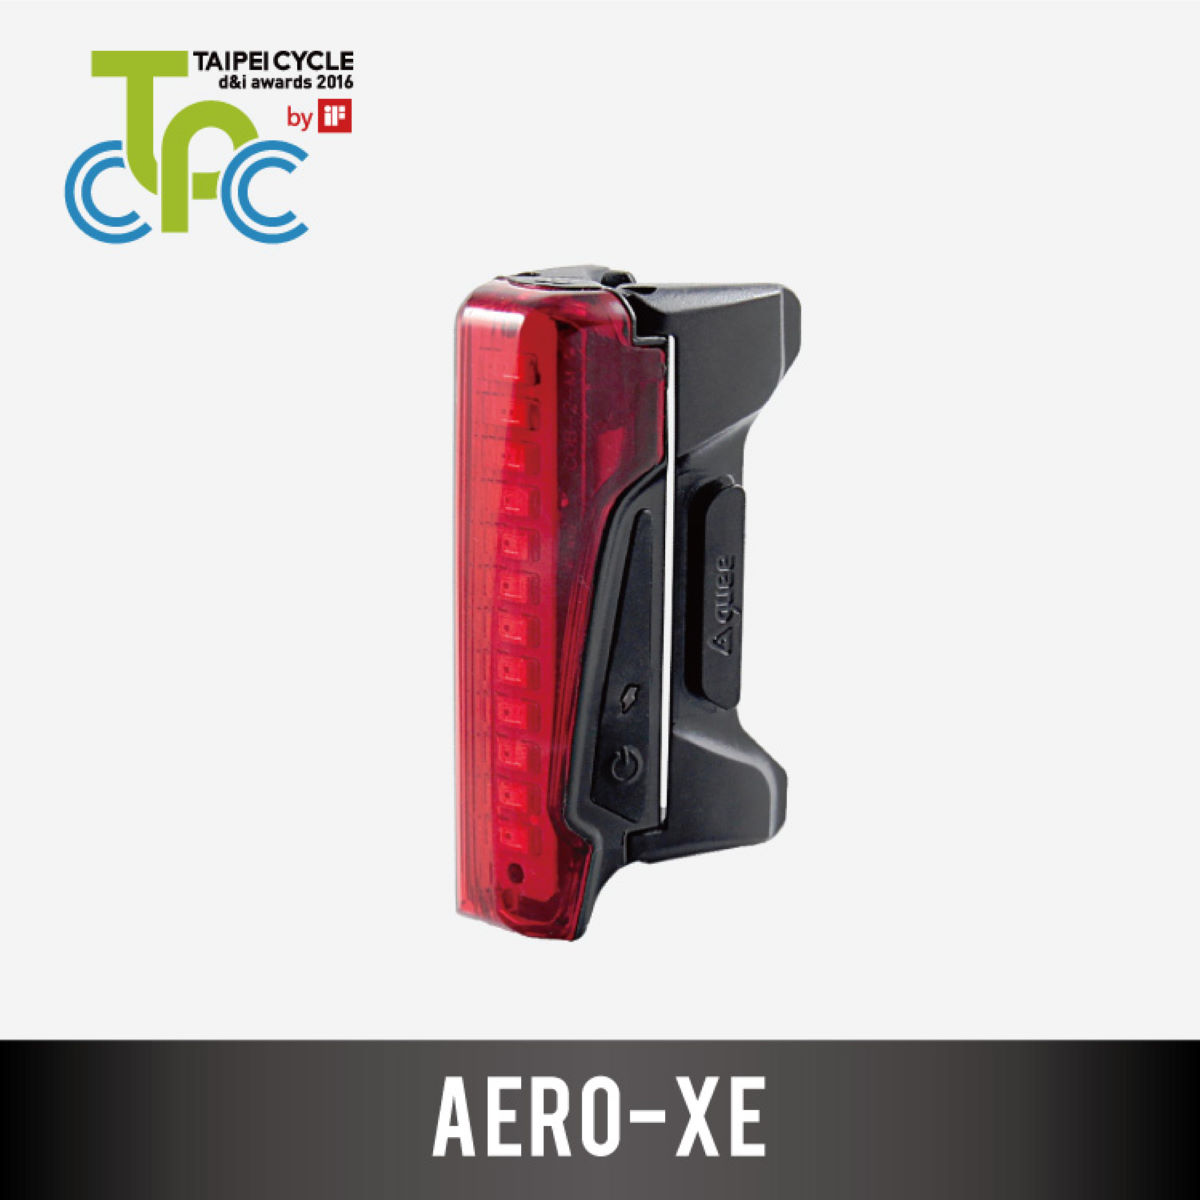 GUEE Aero-Xe Tail light - Luces traseras